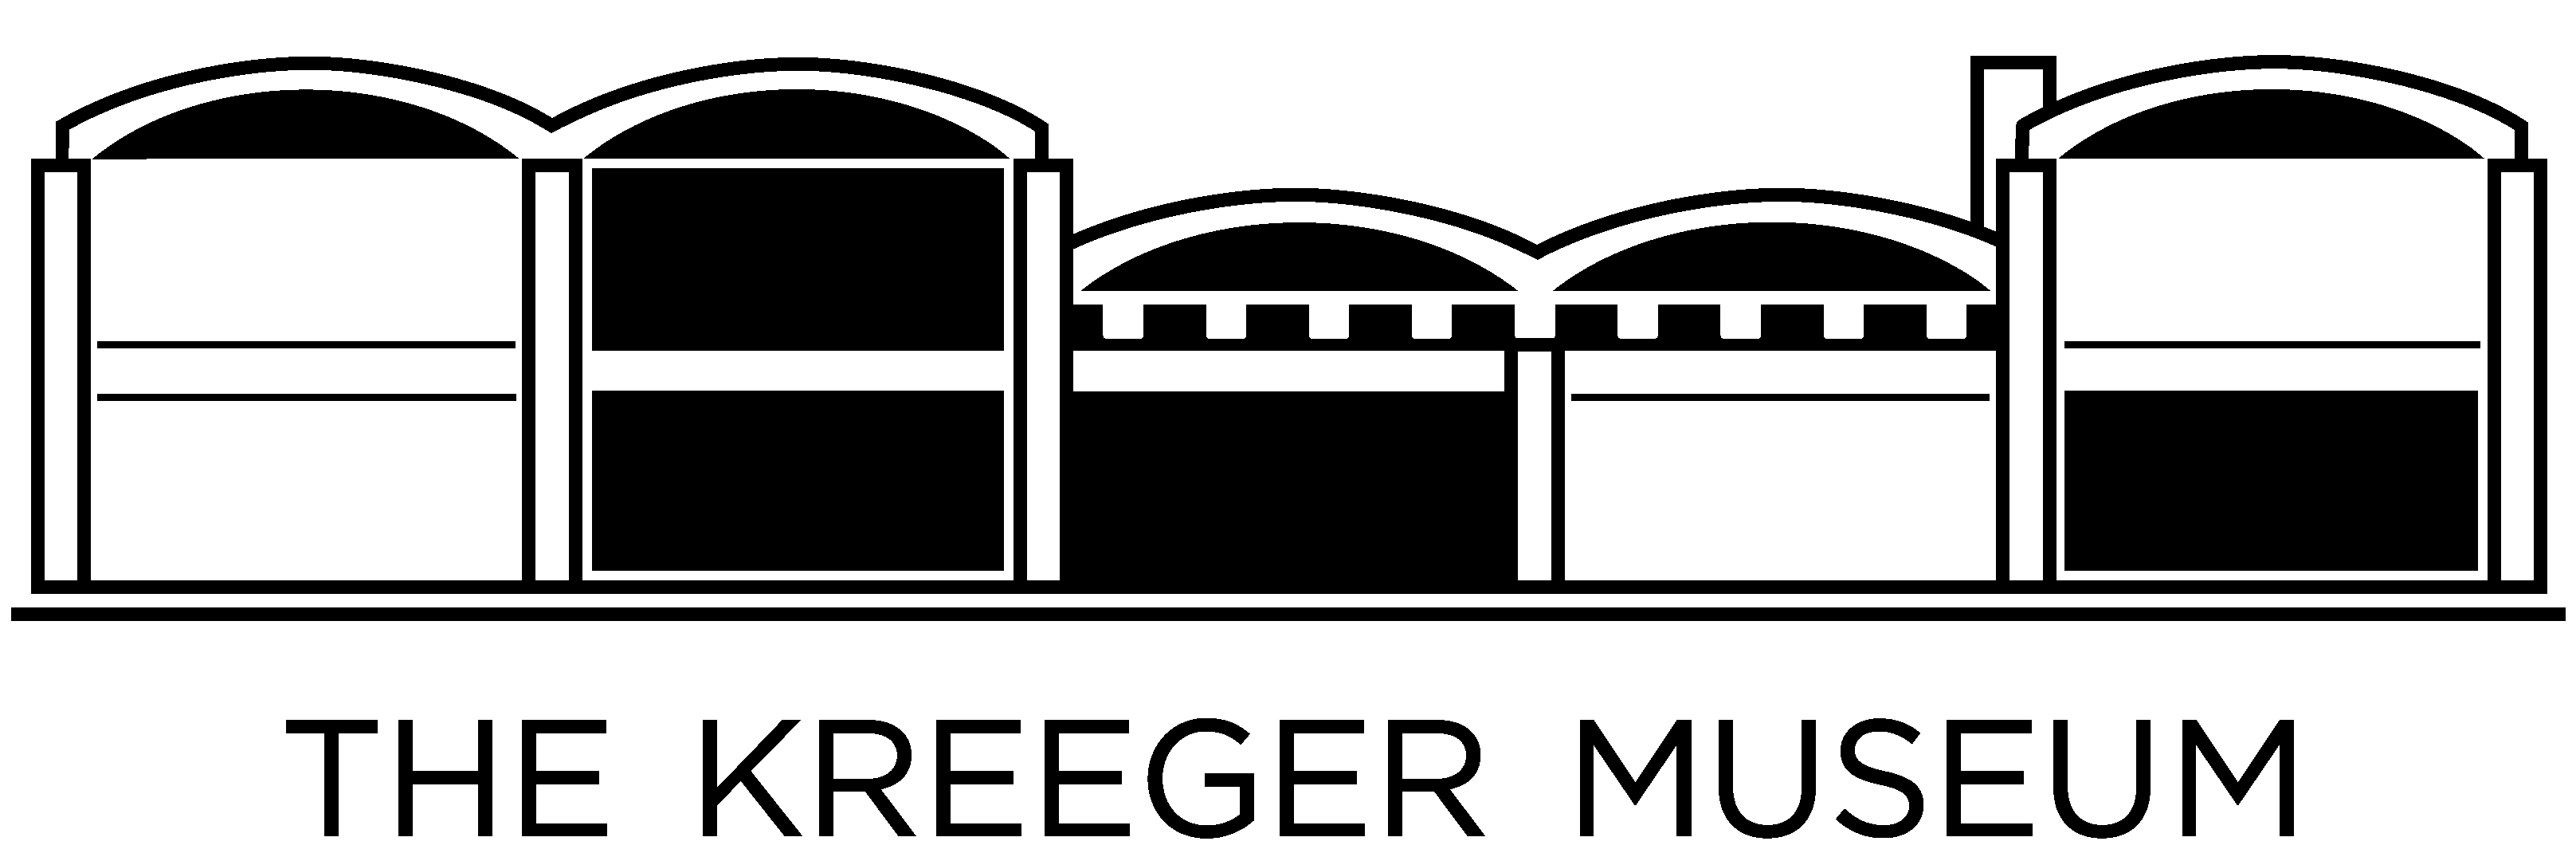 Logo of the Kreeger Museum.